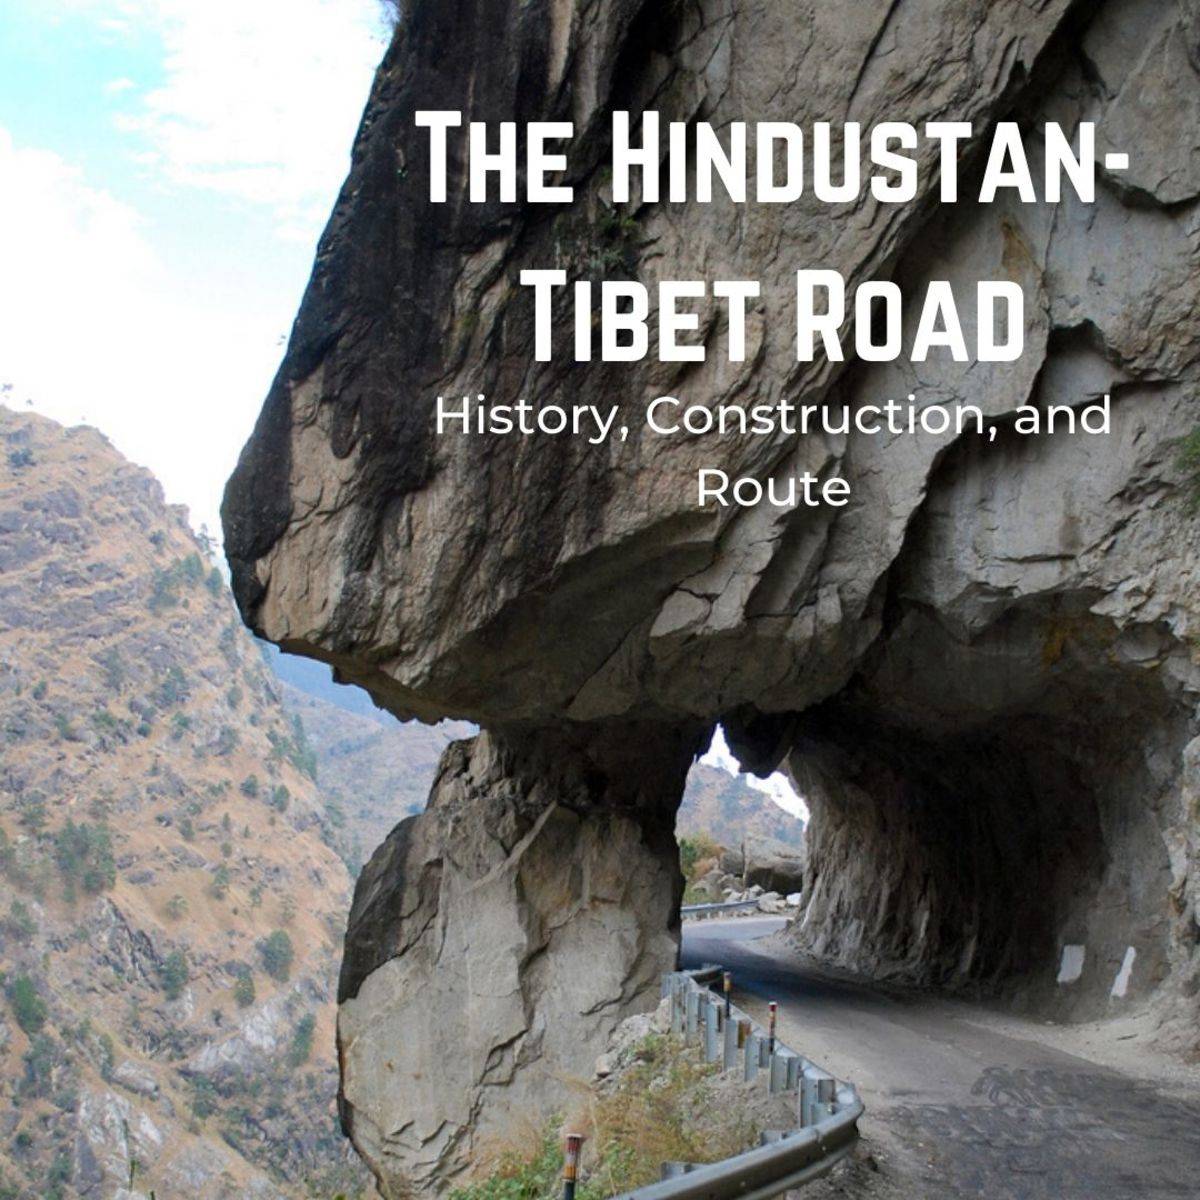 All About the Hindustan-Tibet Road (History and Route)